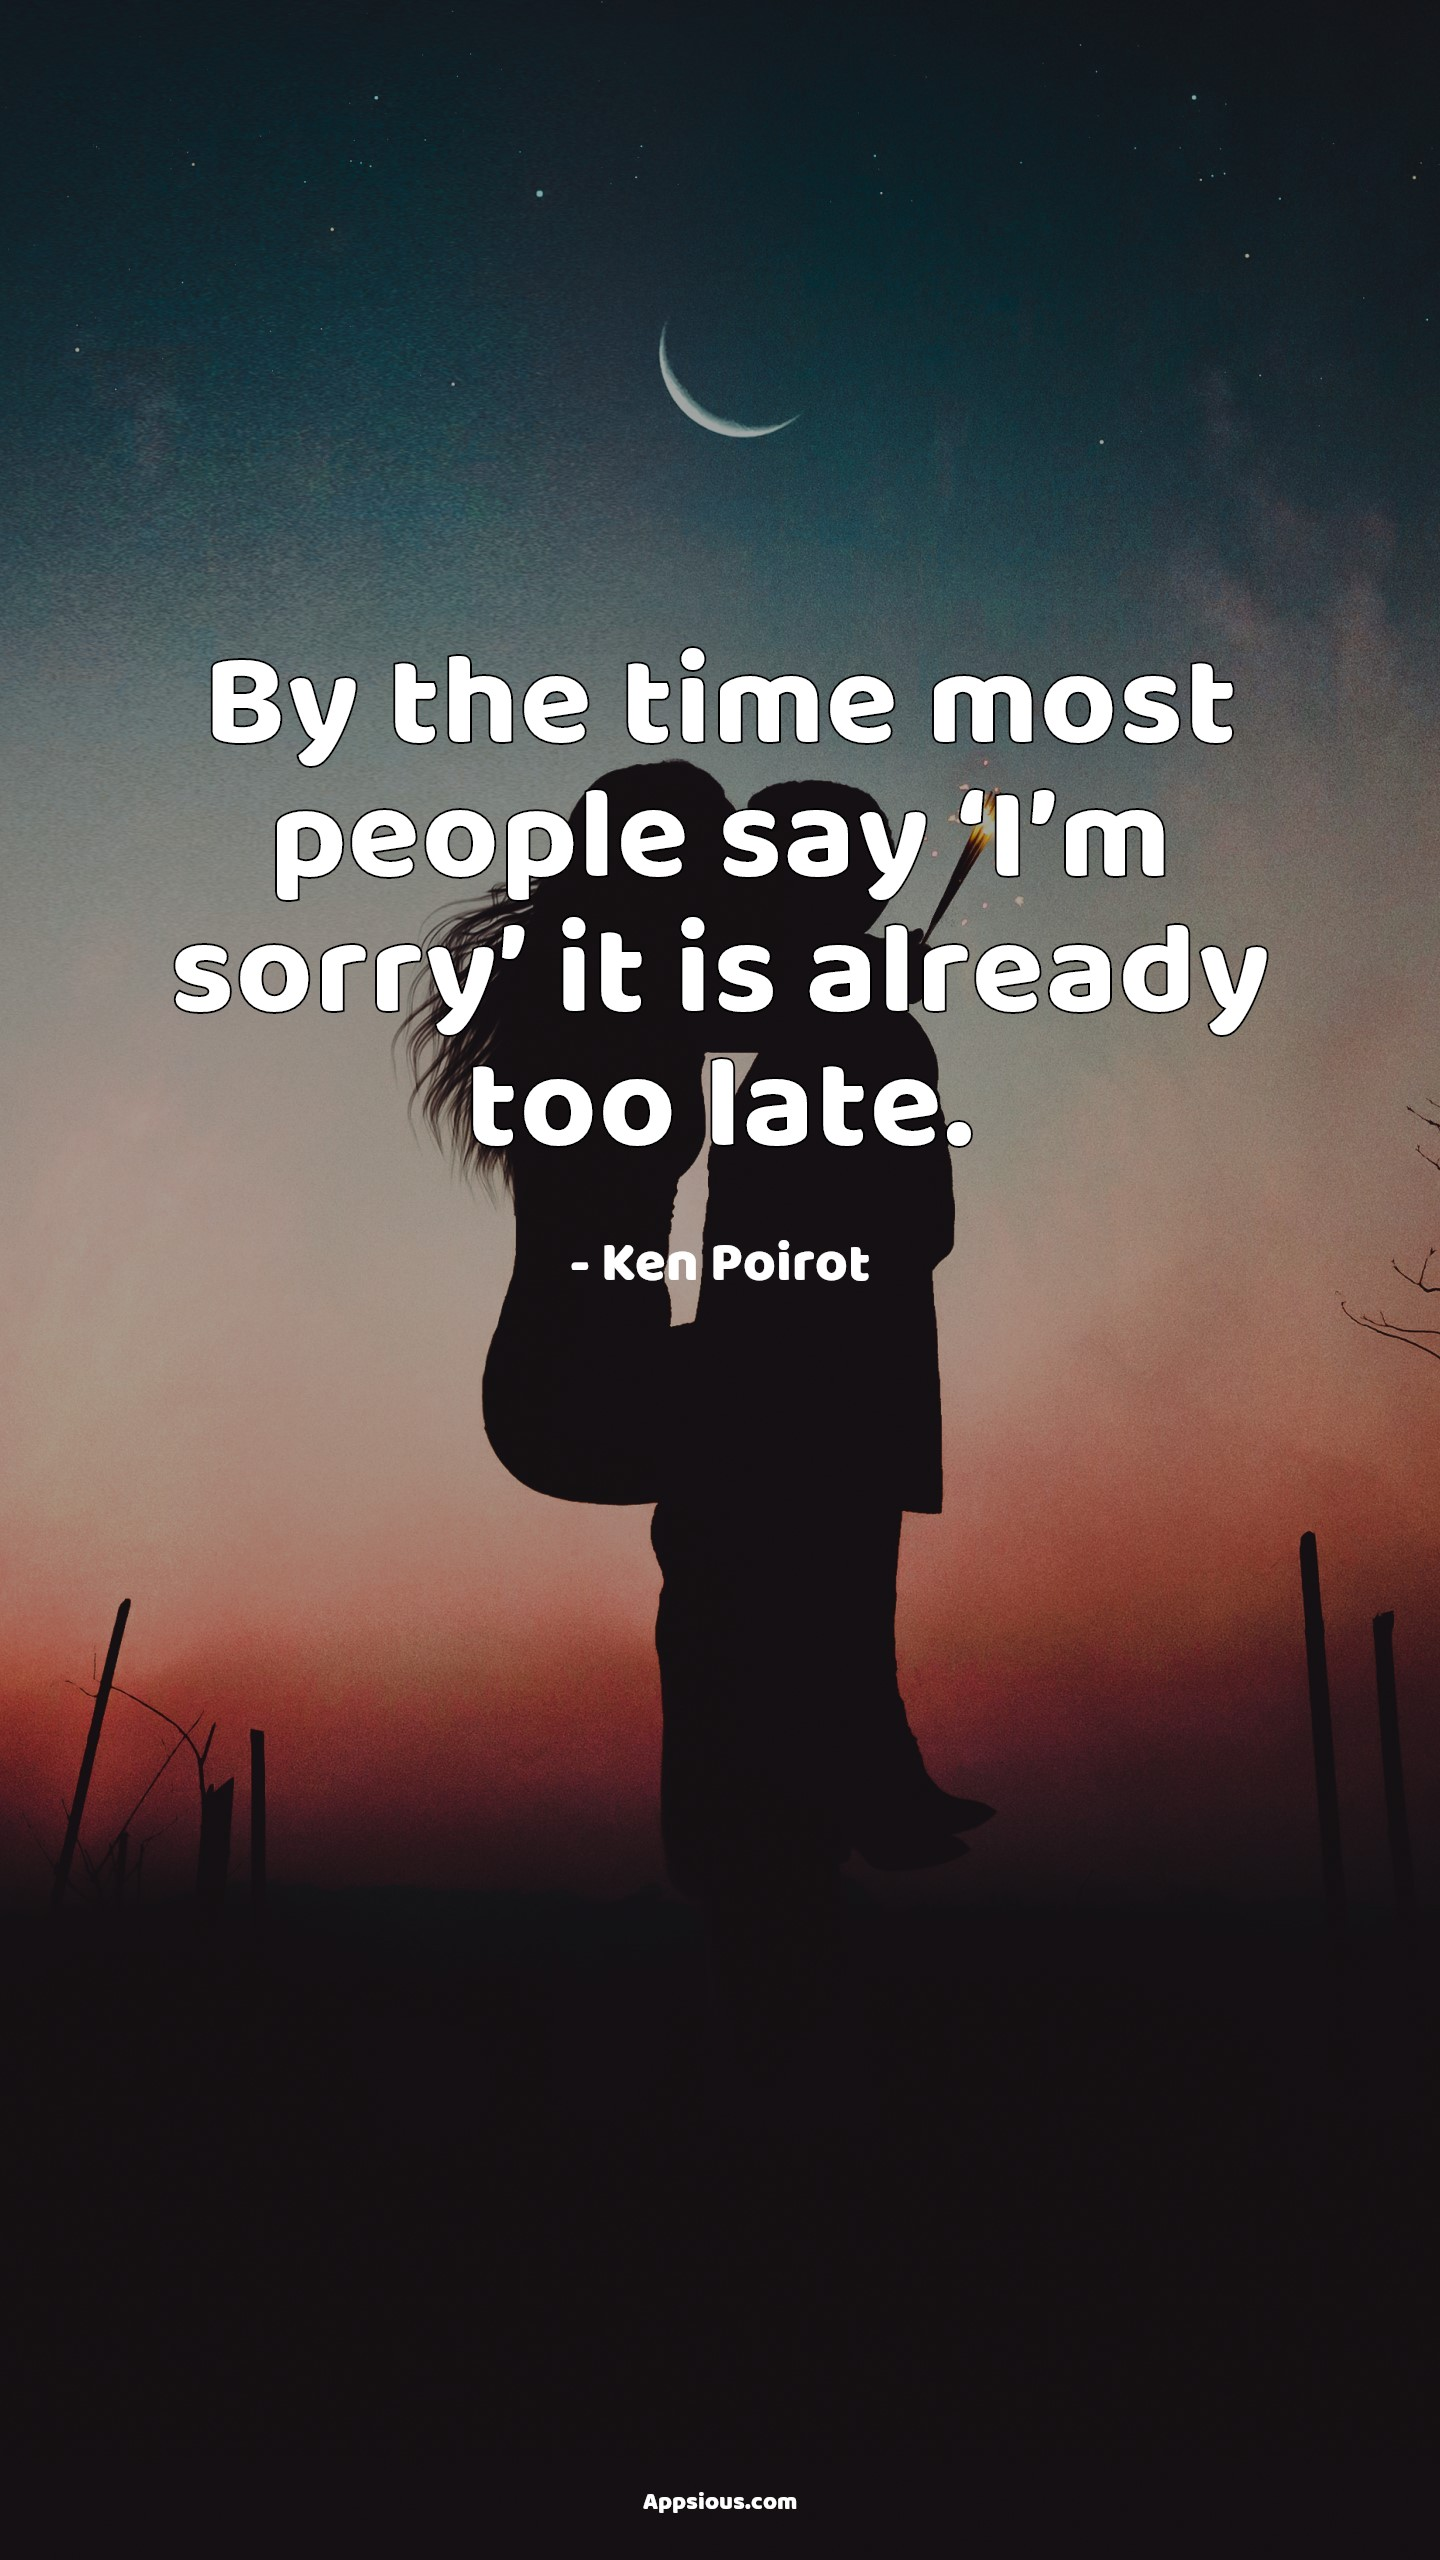 By the time most people say 'I'm sorry' it is already too late.